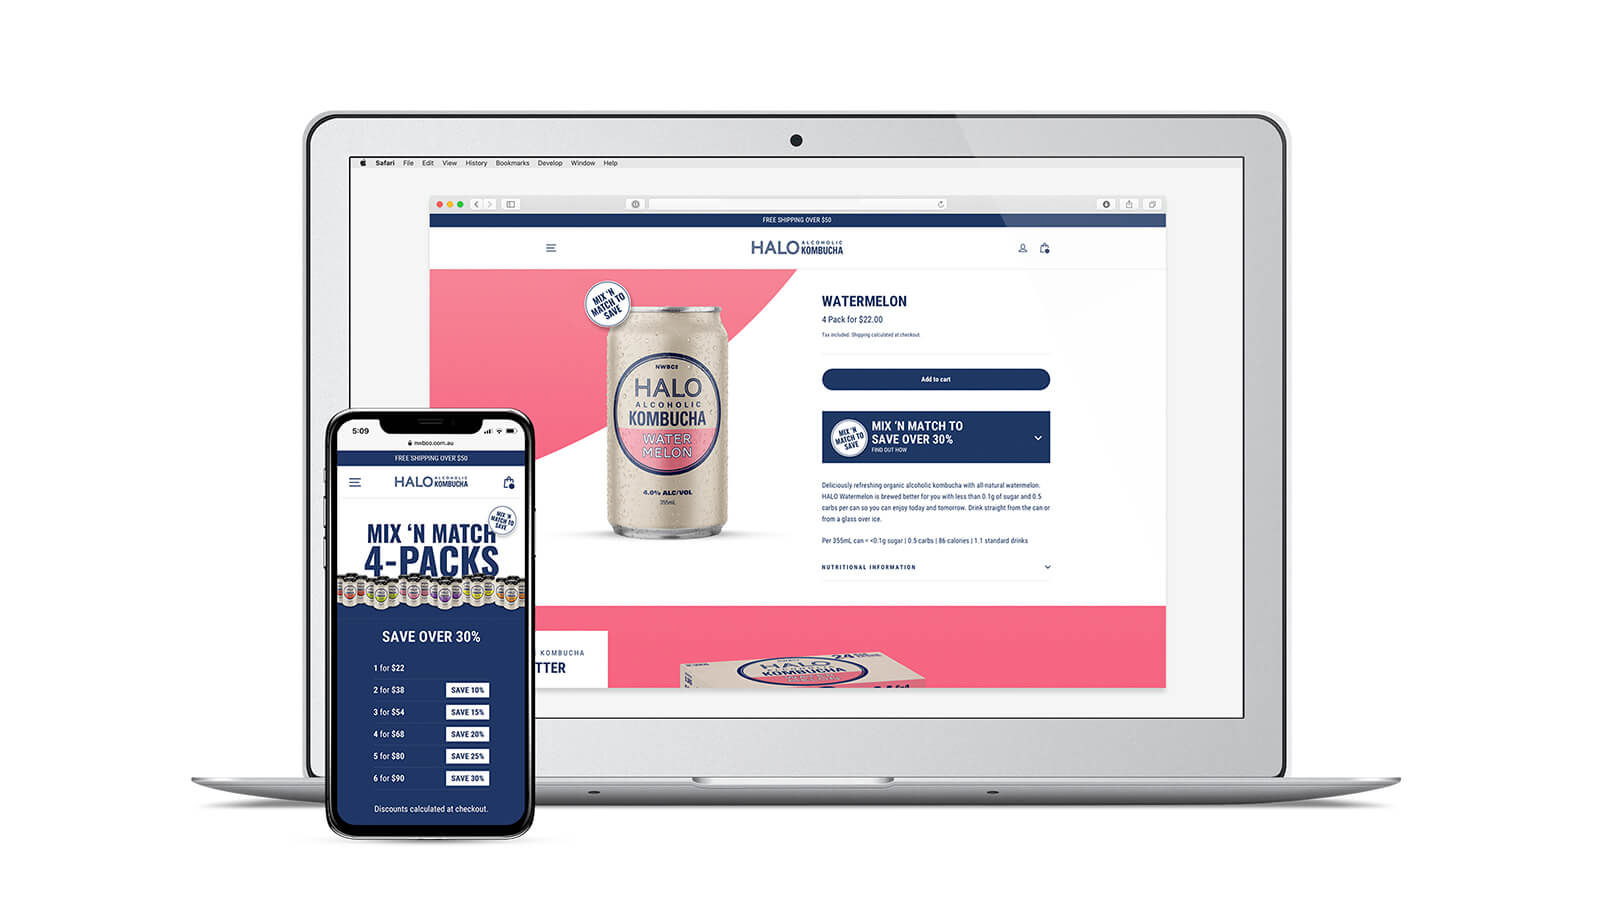 Halo Alcoholic Kombucha | responsive website - laptop and mobile showing product page | Devotion